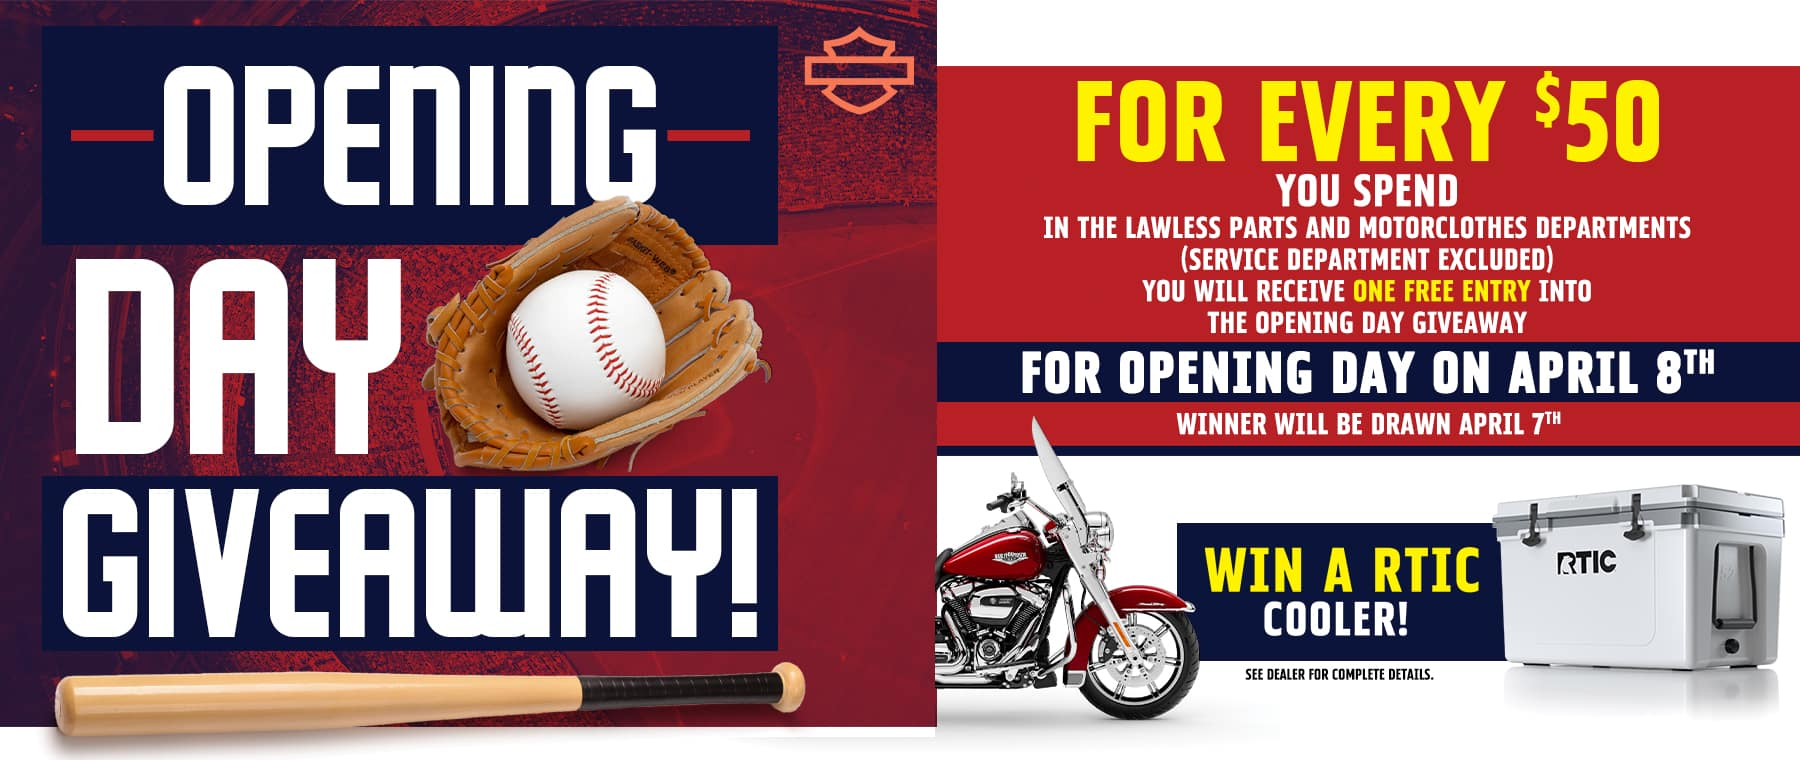 Opening Day Giveaway-Slide